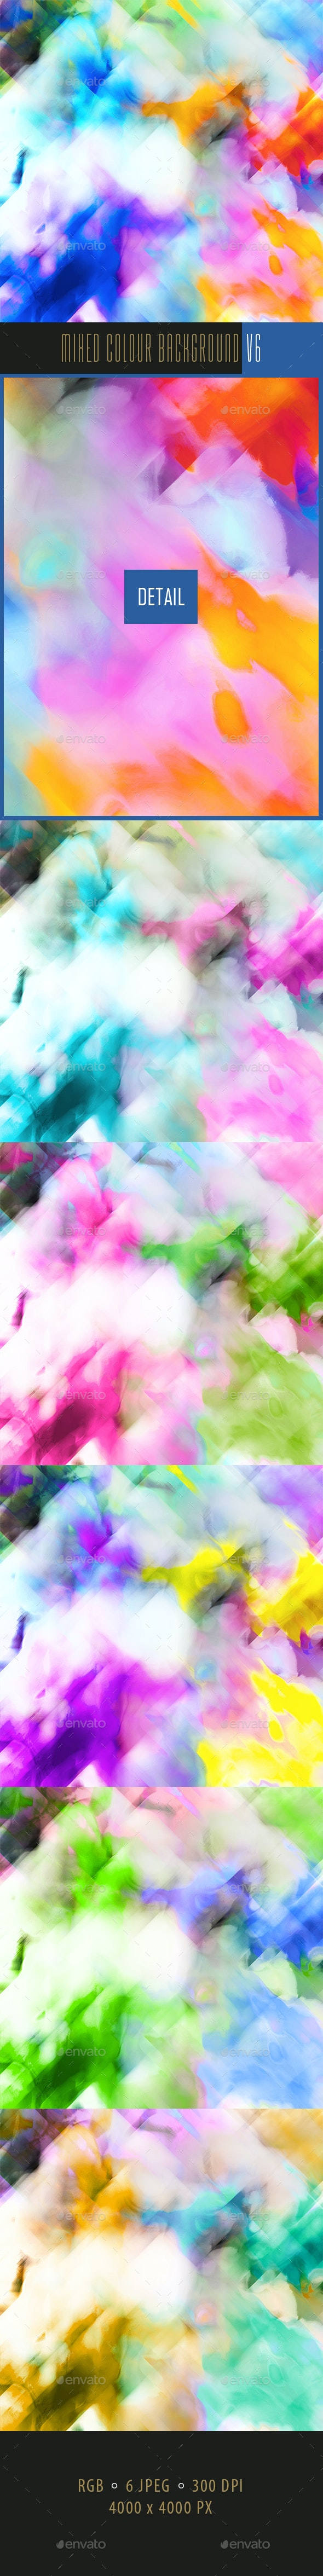 Mixed Colour Background v6 - Abstract Backgrounds